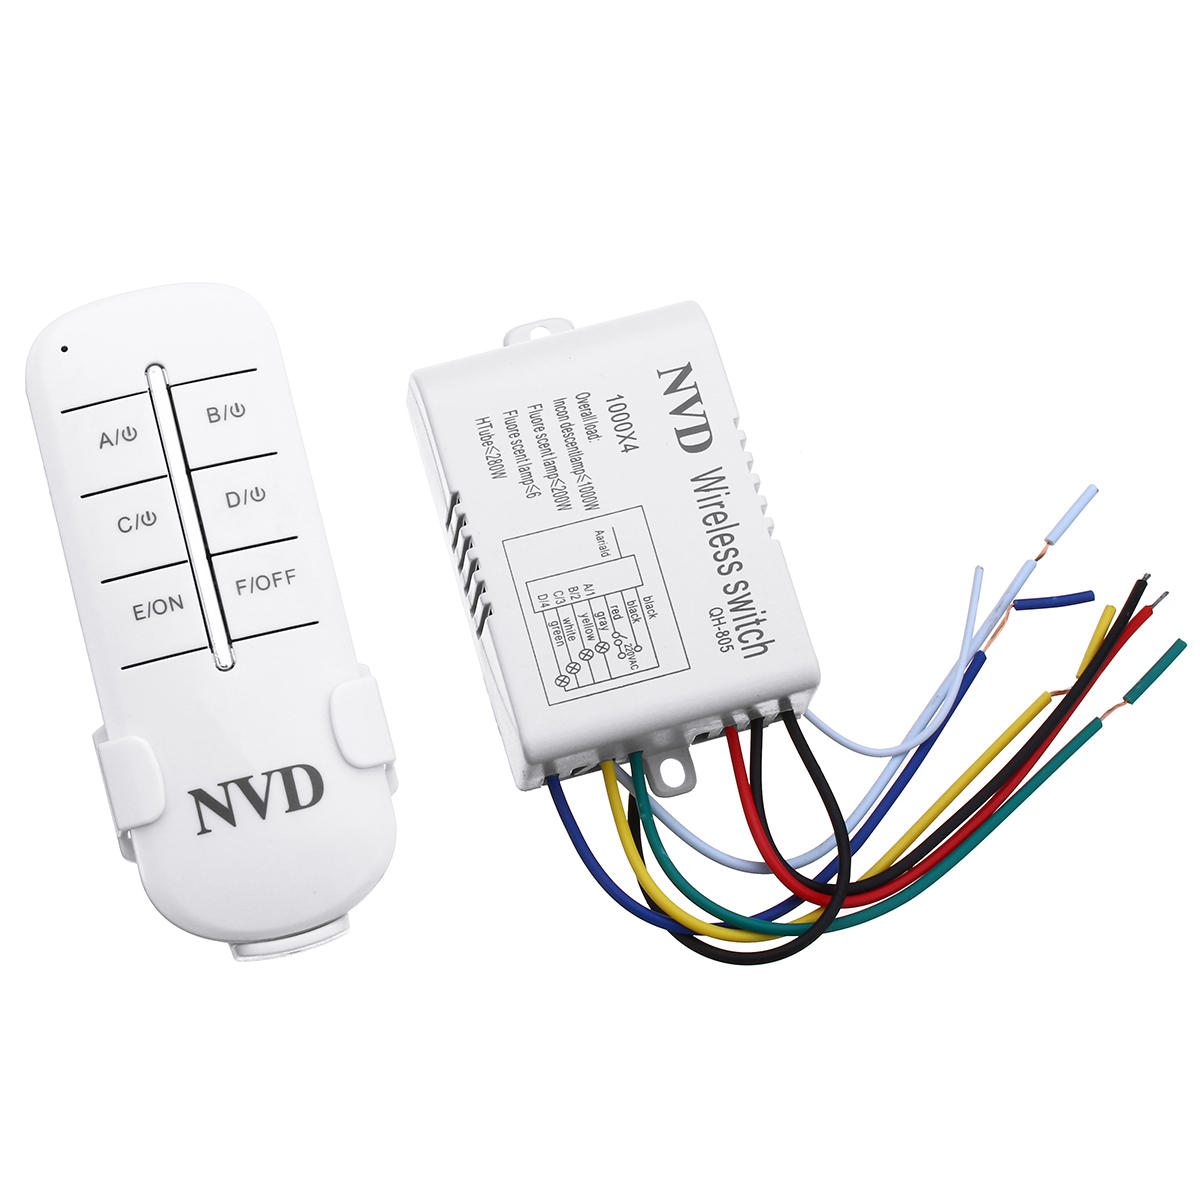 hight resolution of 1000w 220v four way intelligent remote control switch led lamp wireless remote control switch digital wireless remote control switch 220v intelligent remote